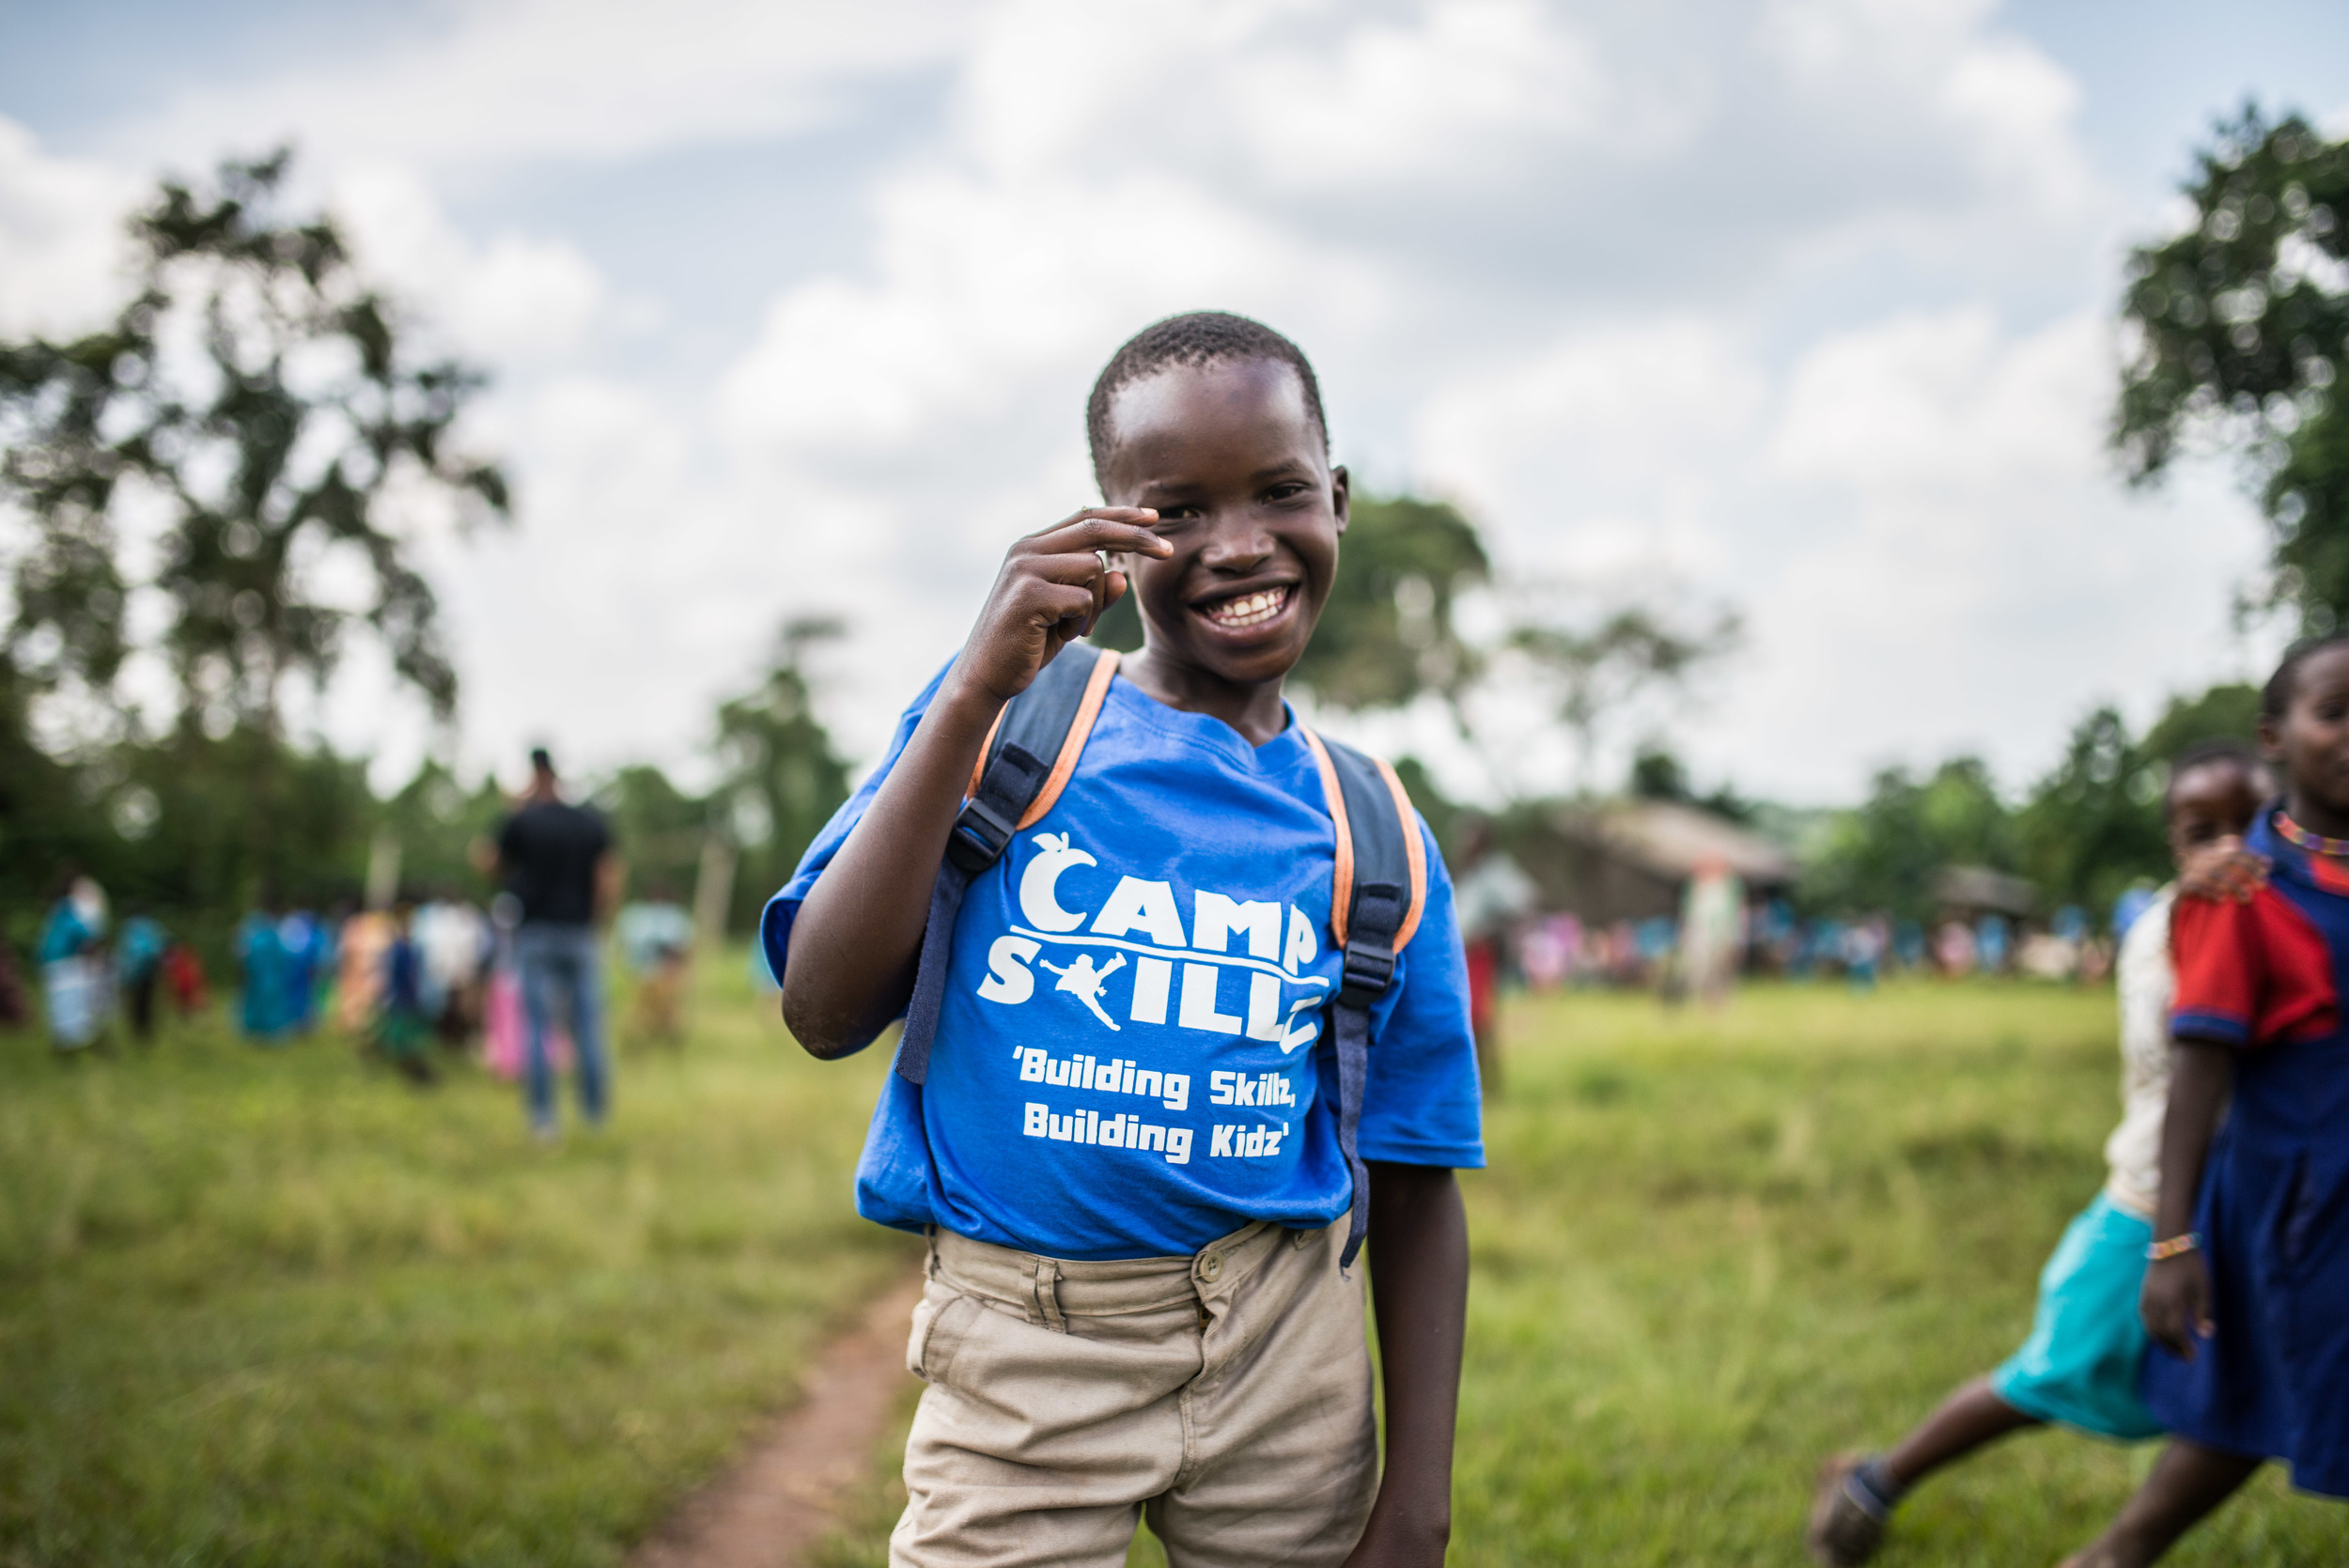 We were happy to provide the full Camp Skillz experience to the children in Uganda, including t-shirts, lunch, and a quality camp experience. African kids are not worth less than American ones. We are committed to giving all kids the best!